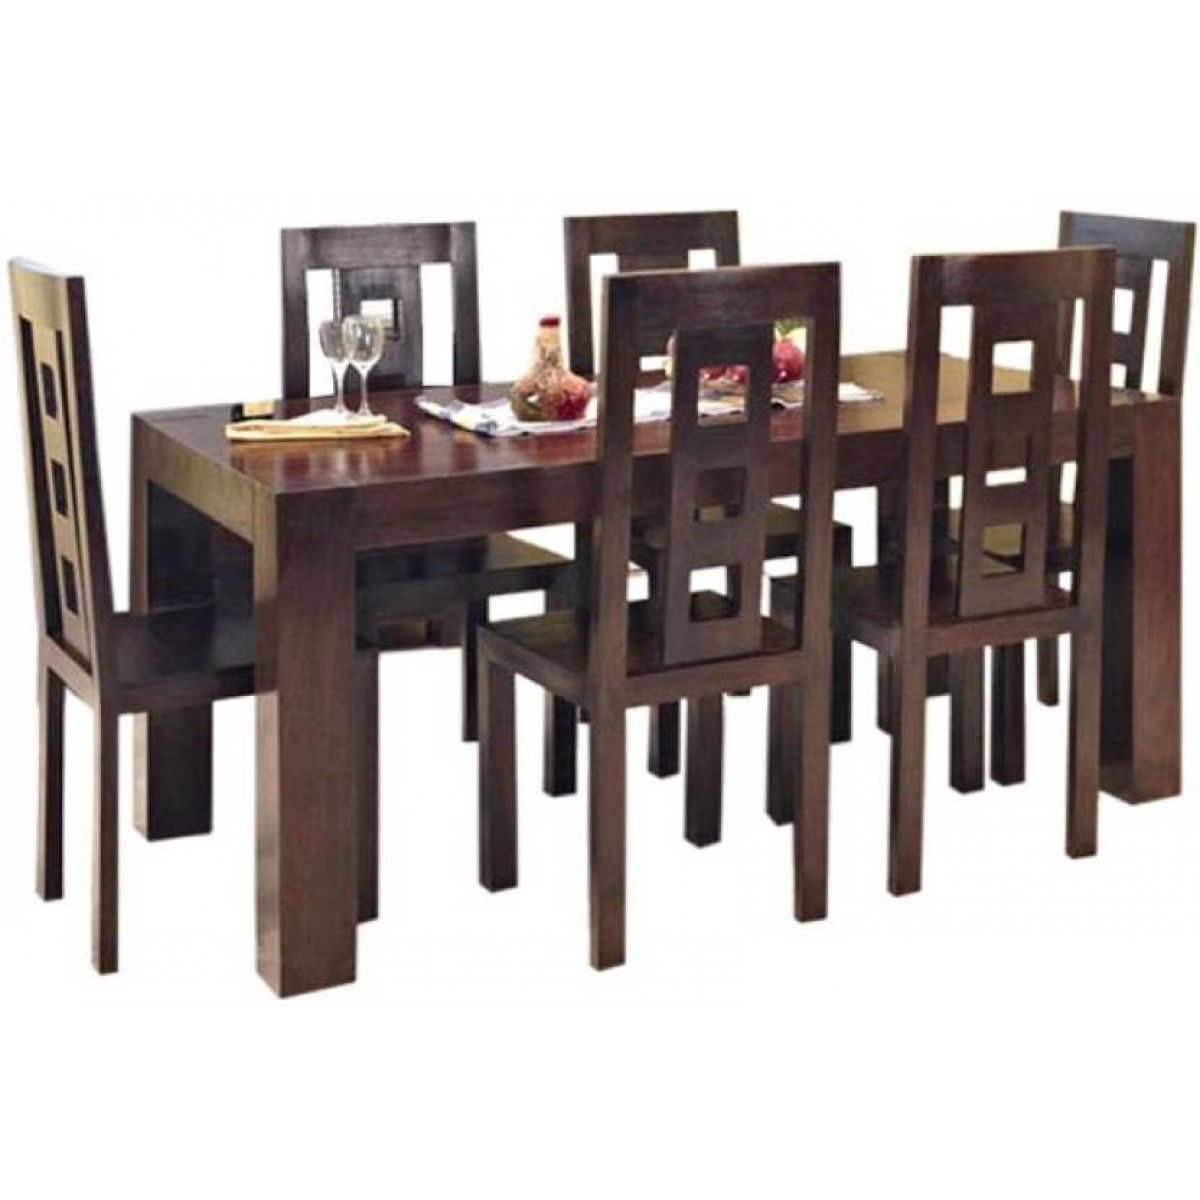 Six Seater Dining Table Online Walnut Brown Color Finishing